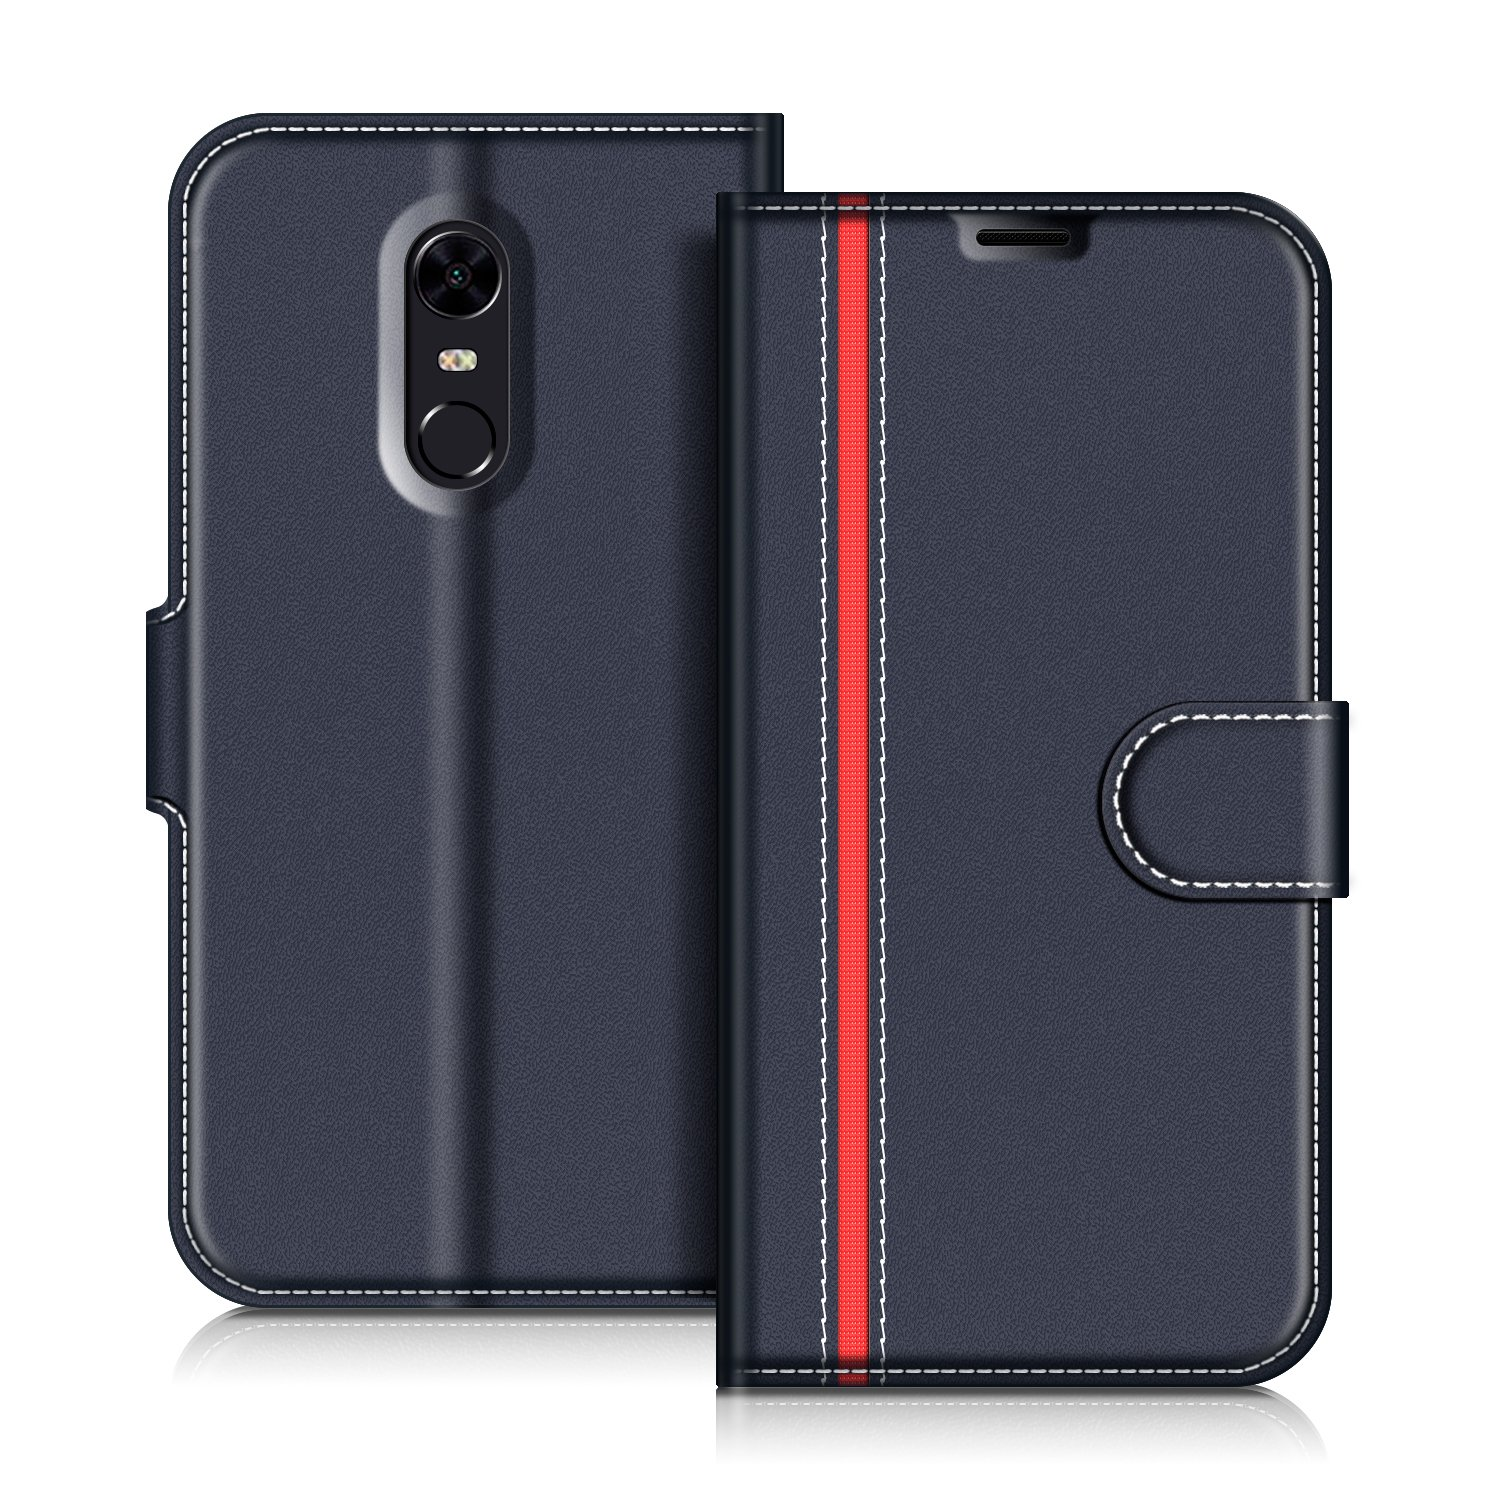 Funda Xiaomi Redmi 5 Plus, Coodio Funda Cuero Xiaomi Redmi 5 Plus, Funda Cartera Xiaomi Redmi 5 Plus Case Con Magnético/Billetera/Soporte Para Xiaomi Redmi 5 Plus, Negro: Amazon.es: Electrónica